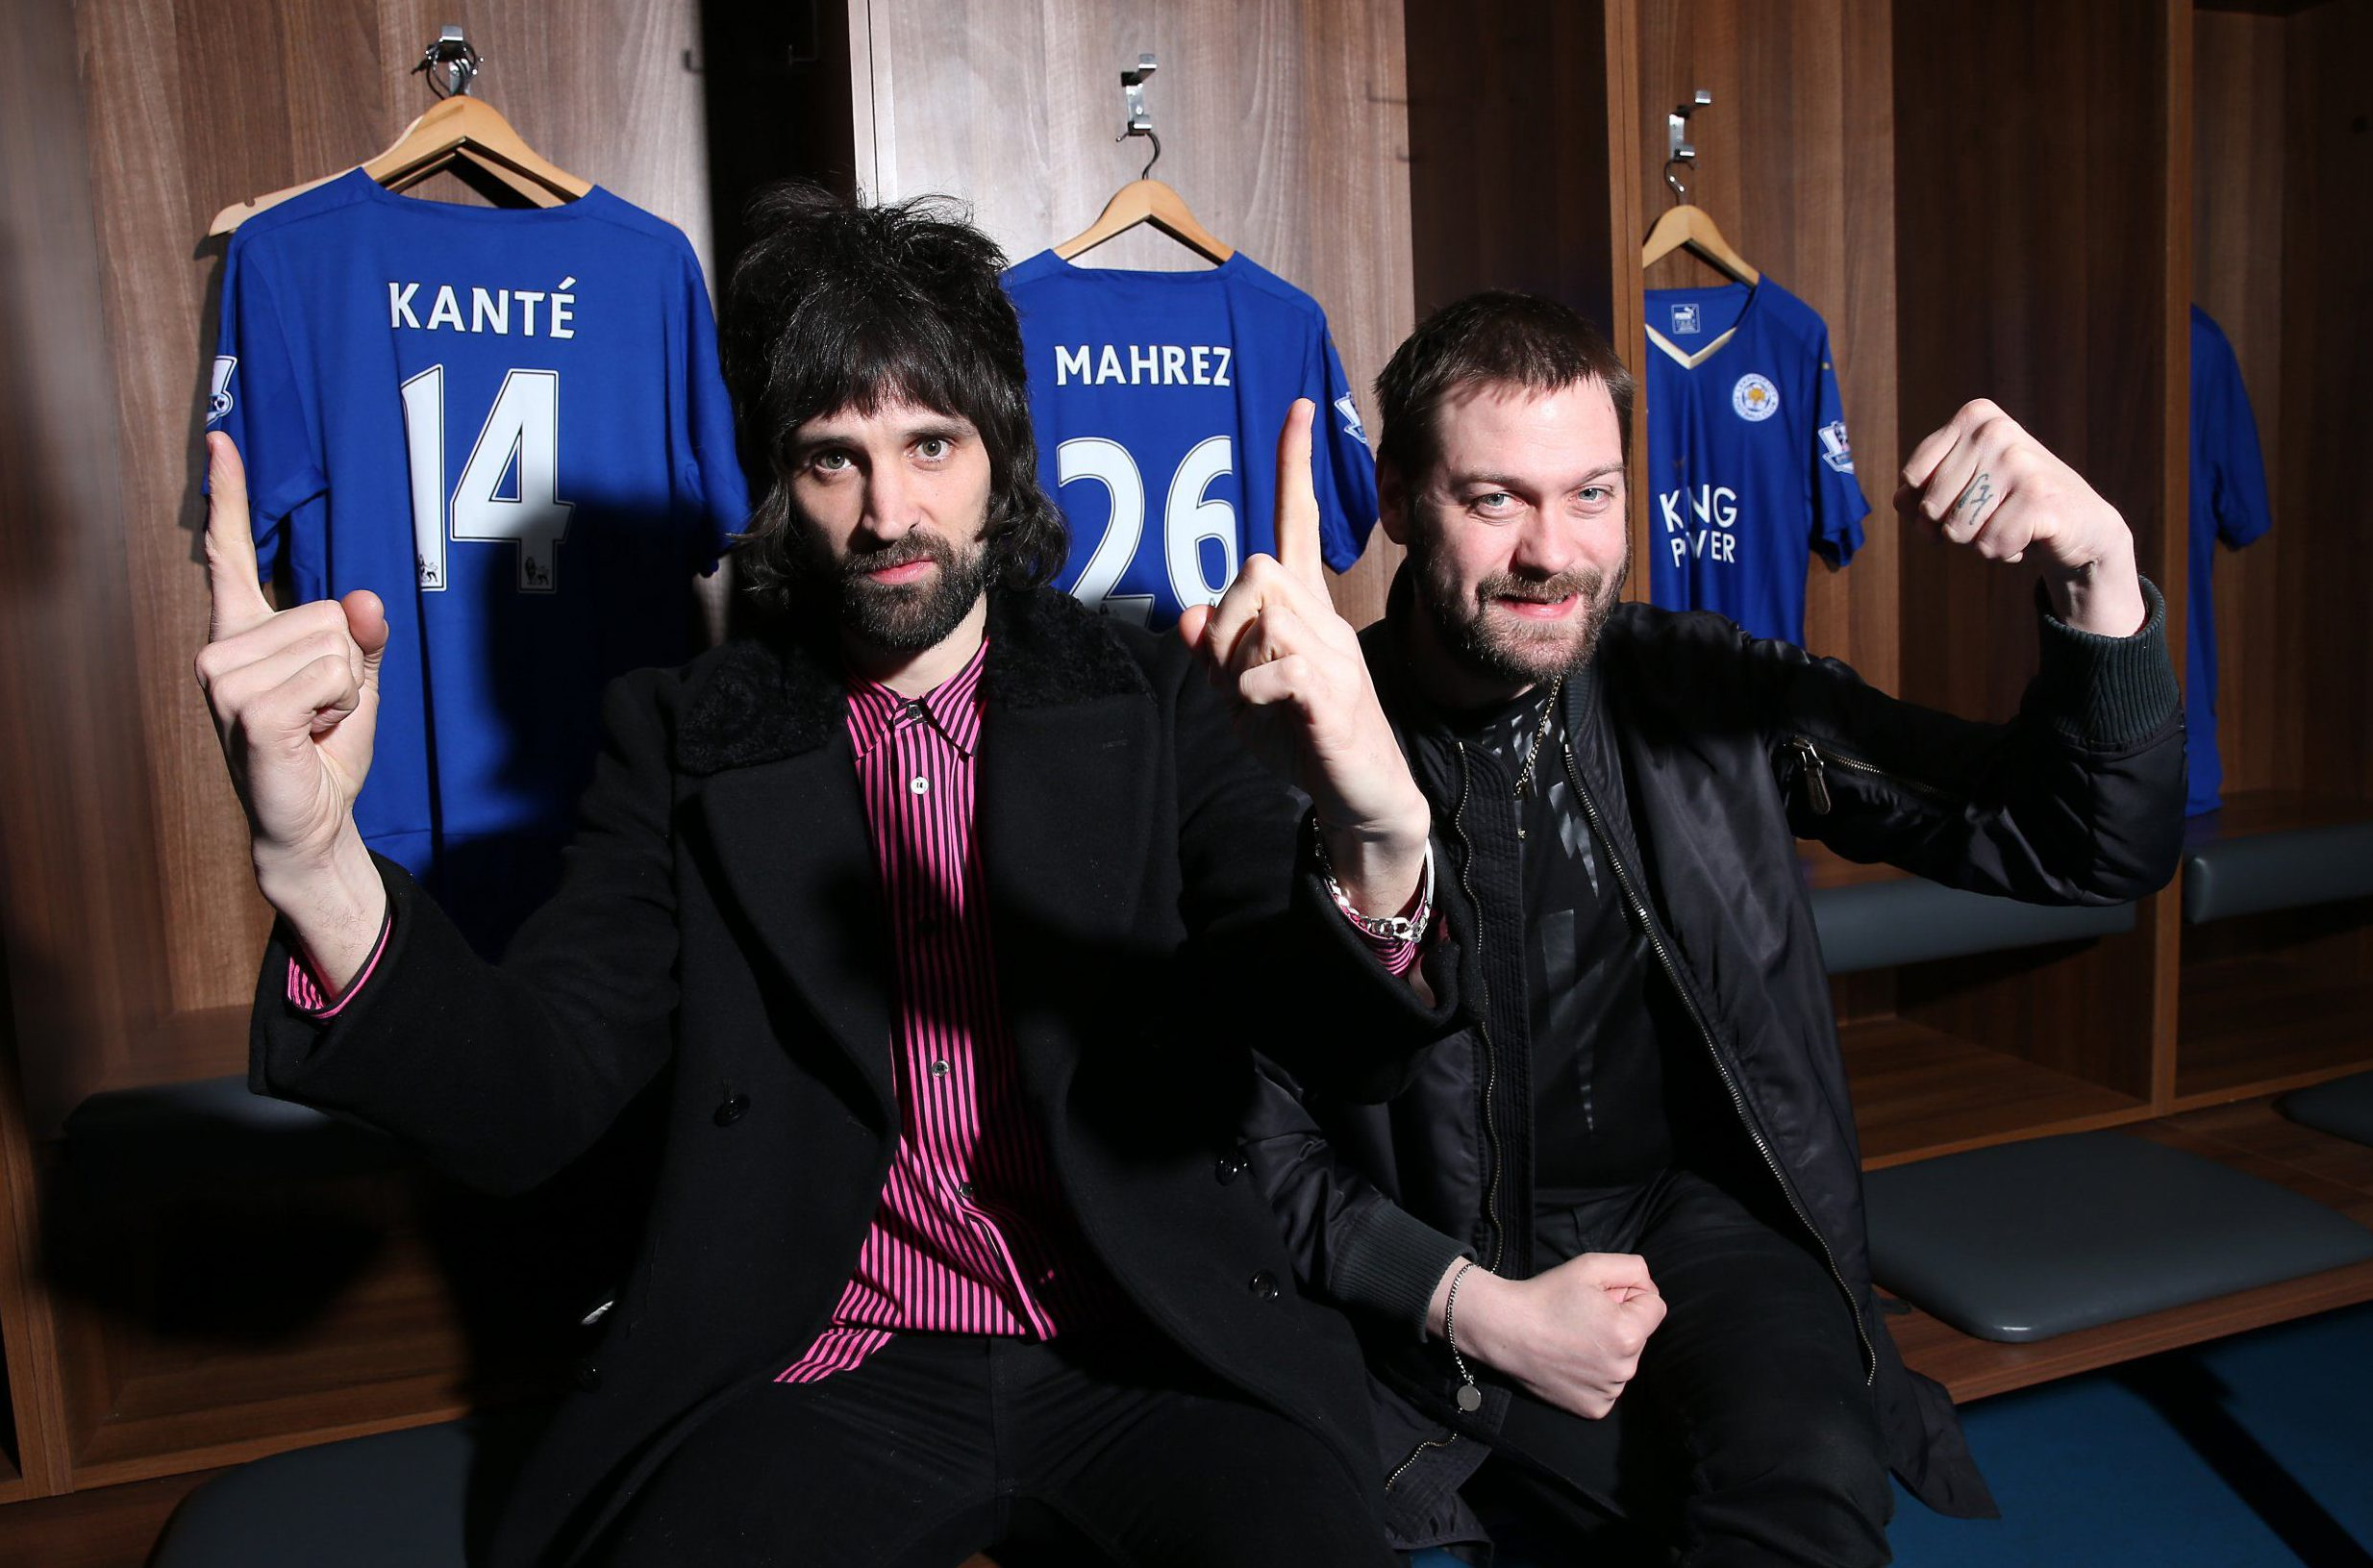 LEICESTER, ENGLAND - APRIL 28: Tom Meighan (R) and Serge Pizzorno (L) of Kasabian pictured as the band announce a summer concert at The King Power Stadium the home of Leicester City on April 28th, 2016 in Leicester, United Kingdom. (Photo by Plumb Images/Leicester City FC via Getty Images)